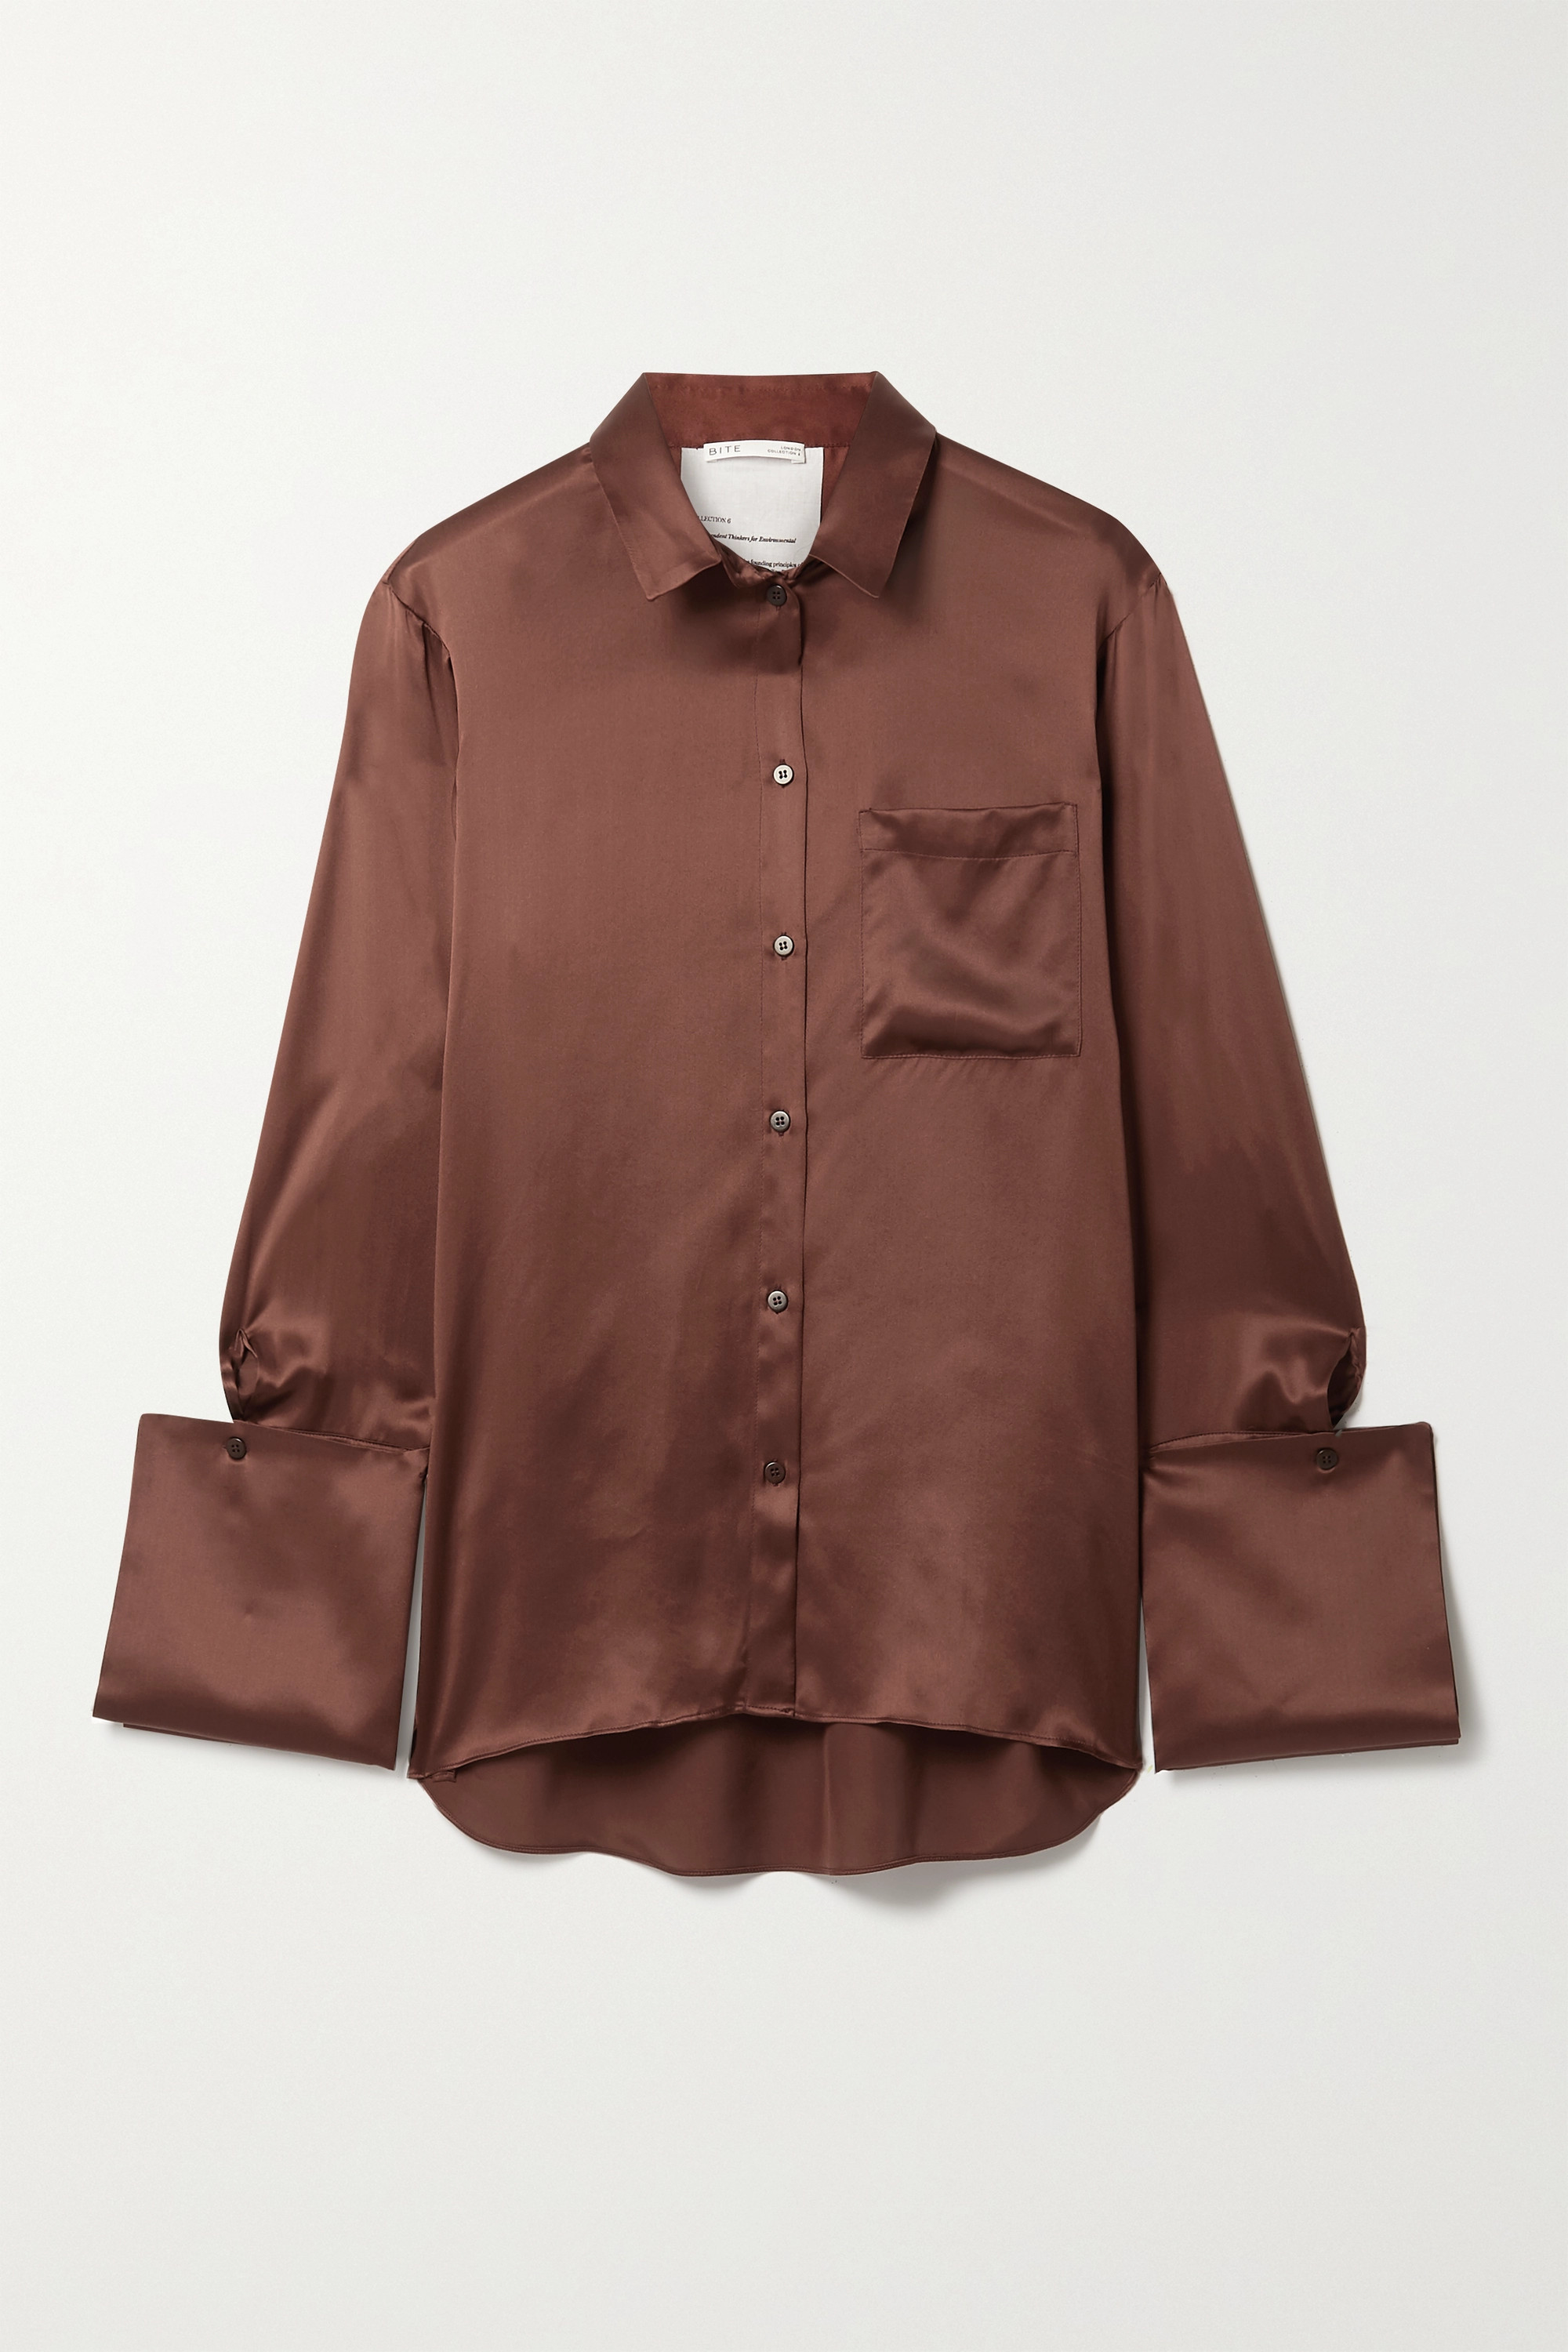 BITE STUDIOS + NET SUSTAIN organic silk-satin shirt